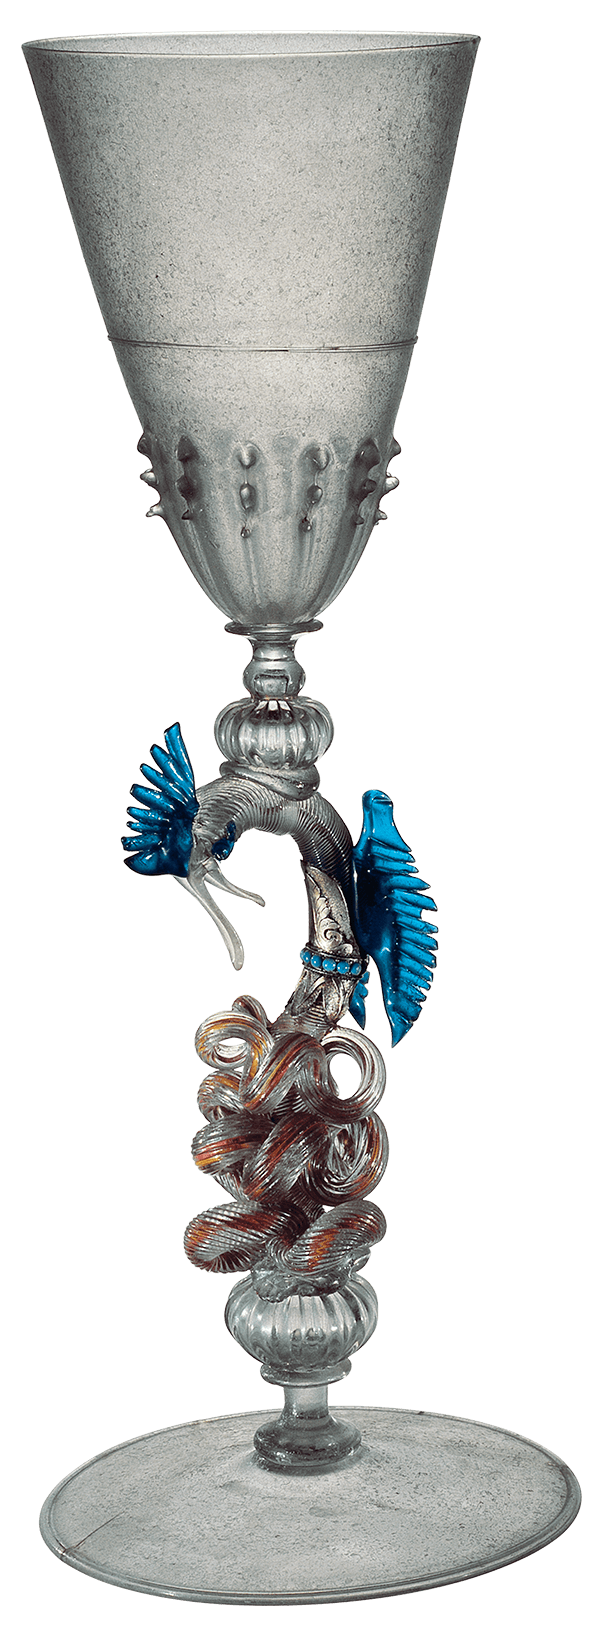 elaborate goblet with colored glass dragon in stem